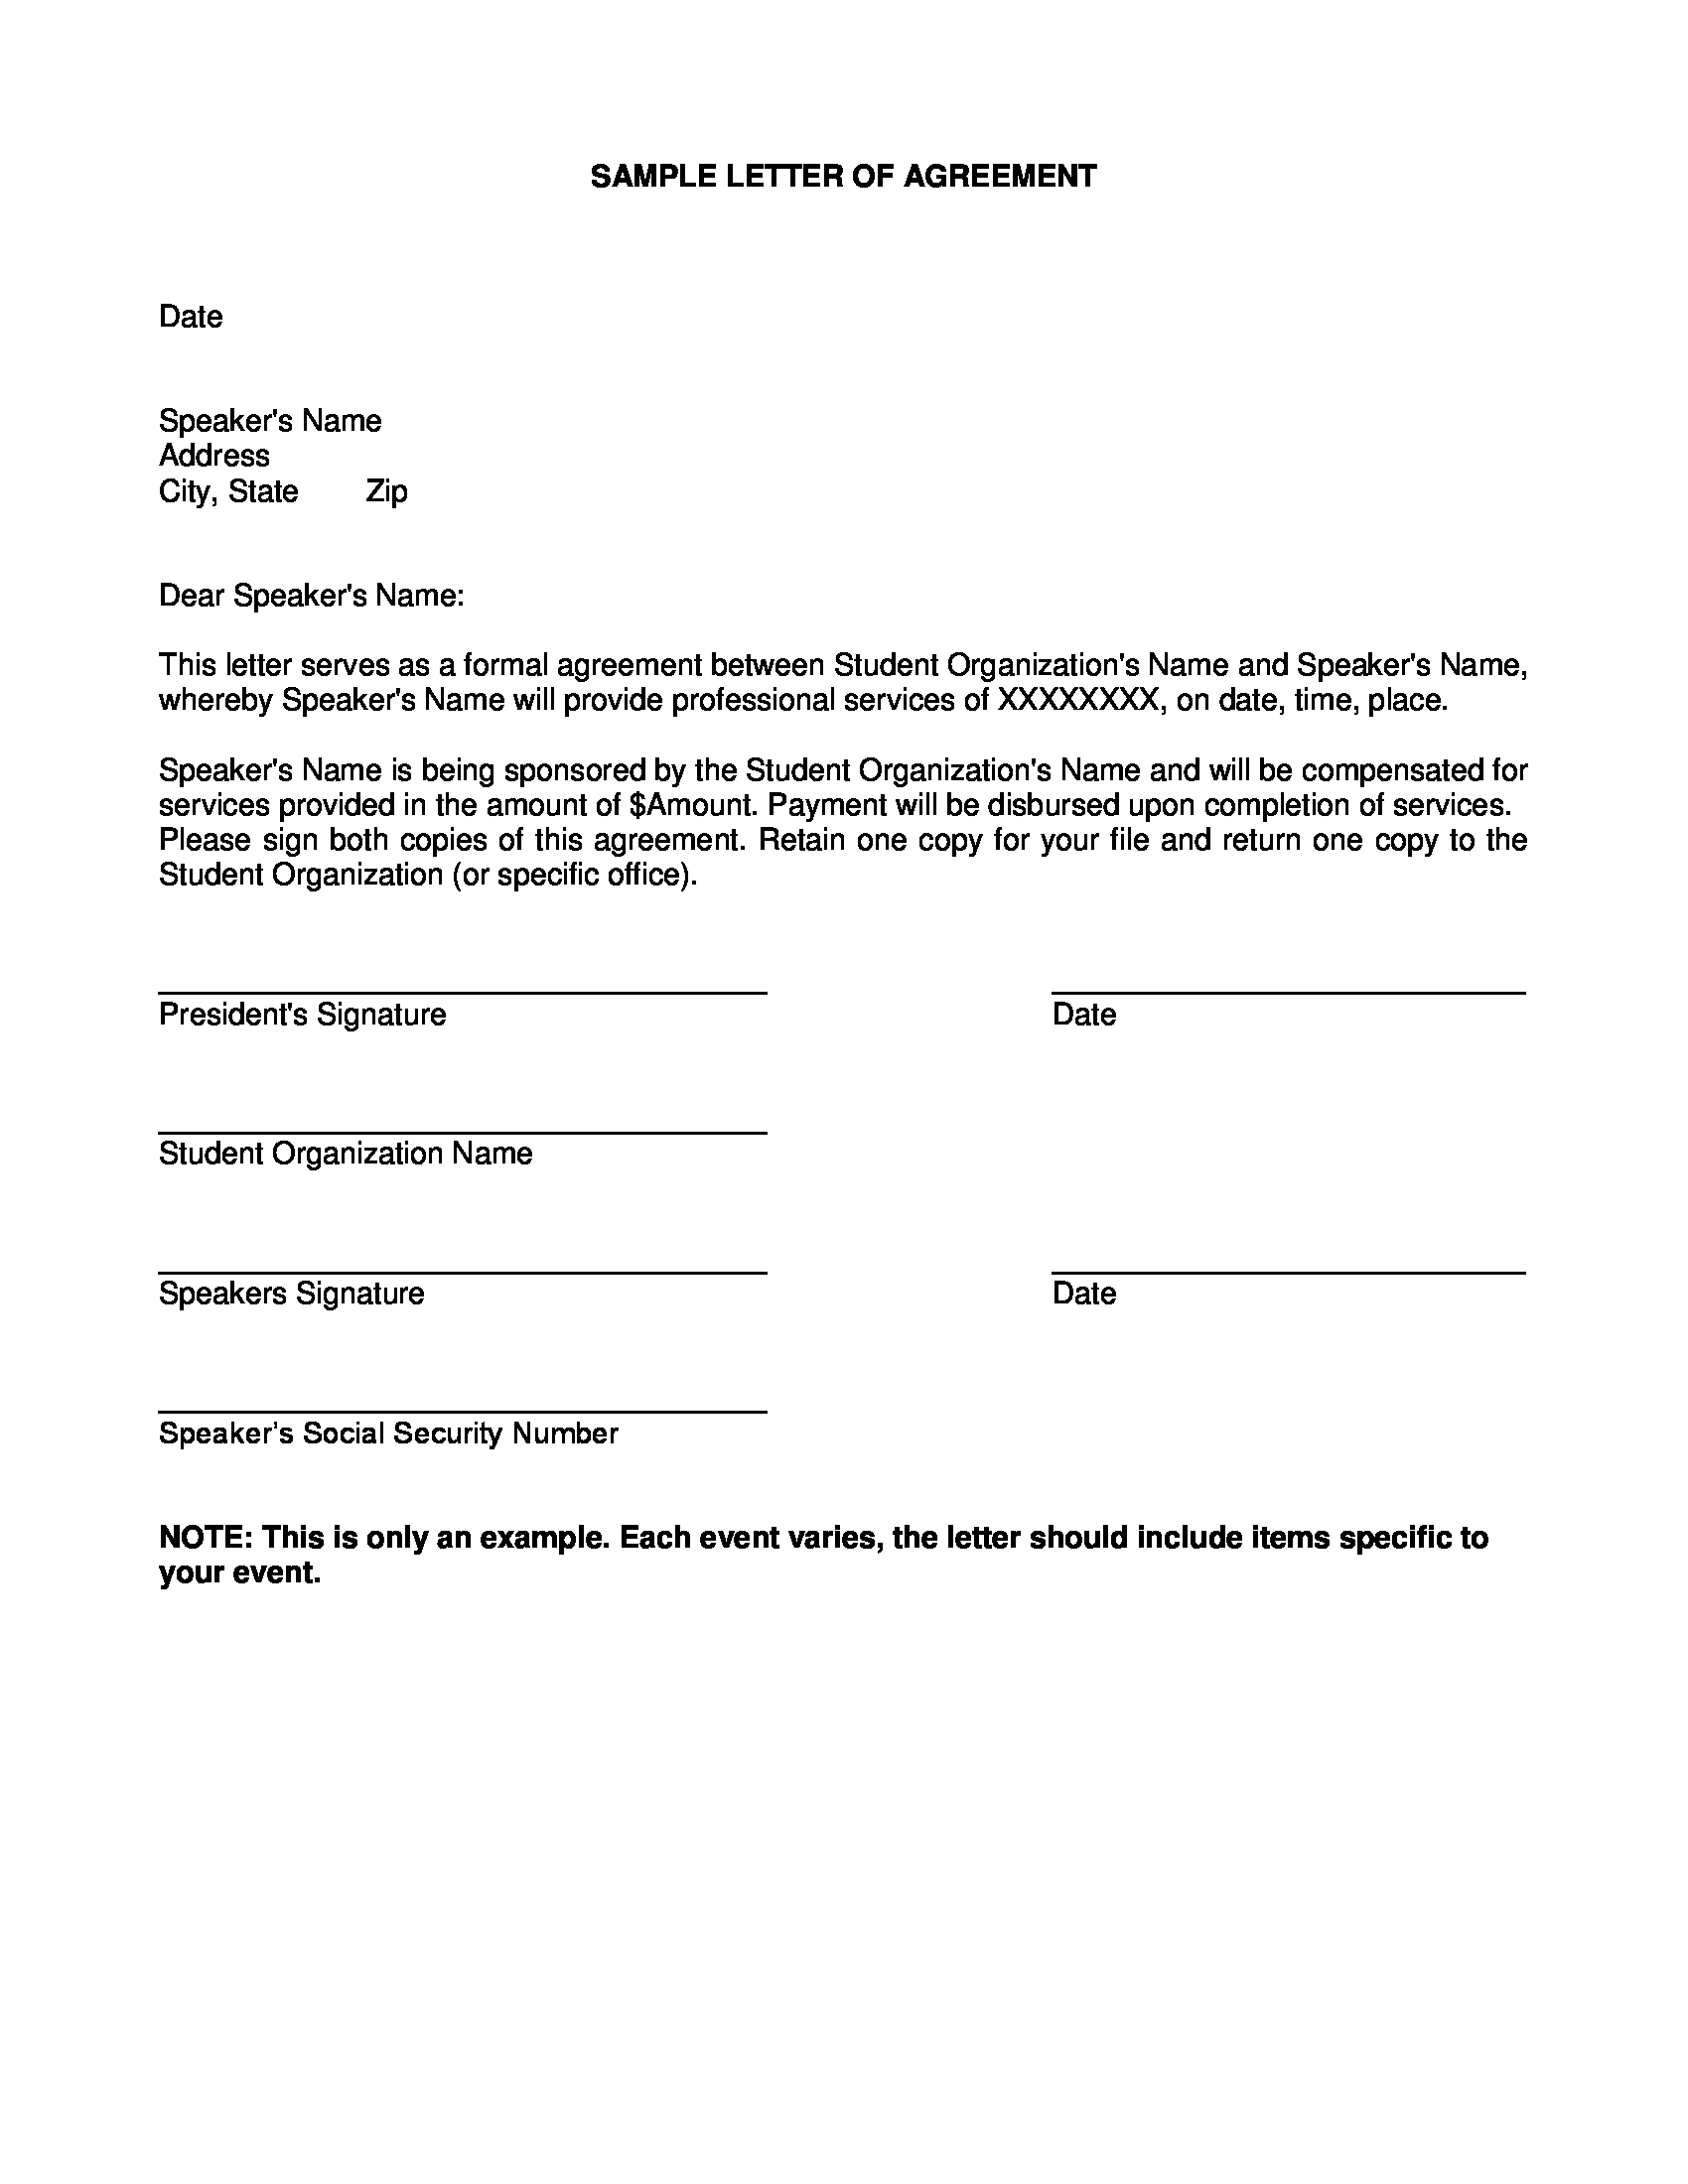 student organization agreement letter example